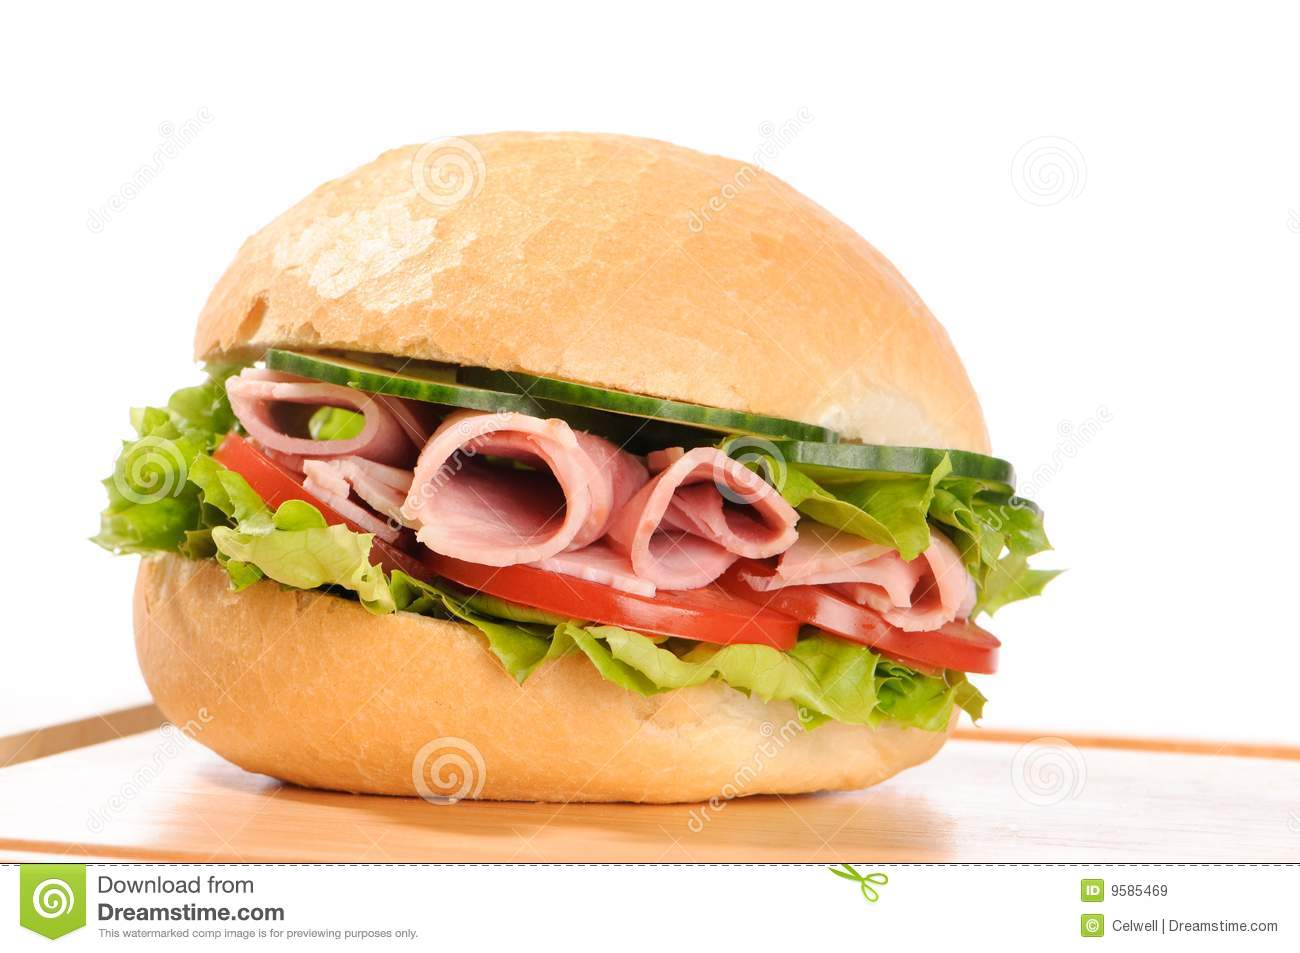 Oscar Mayer Bologna Only 0 08 At Kroger likewise More Pics From Bayonne France likewise Meat Cheese Gifts also Info Spam as well C Rations The First Happy Meal. on turkey ham